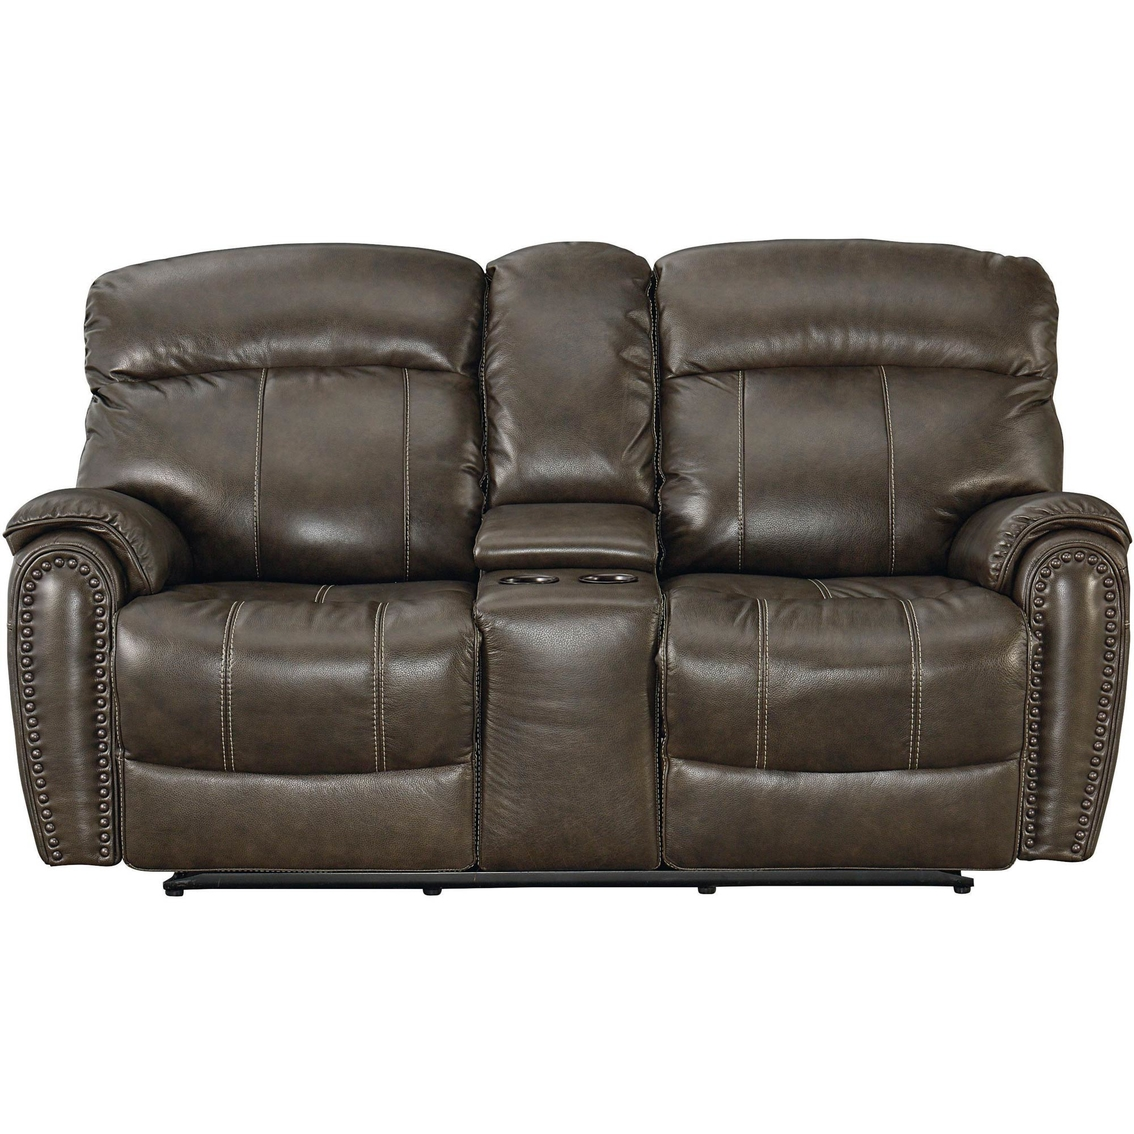 Picture of: Bassett Club Level Bridgeport Power Reclining Loveseat Sofas Couches Furniture Appliances Shop The Exchange